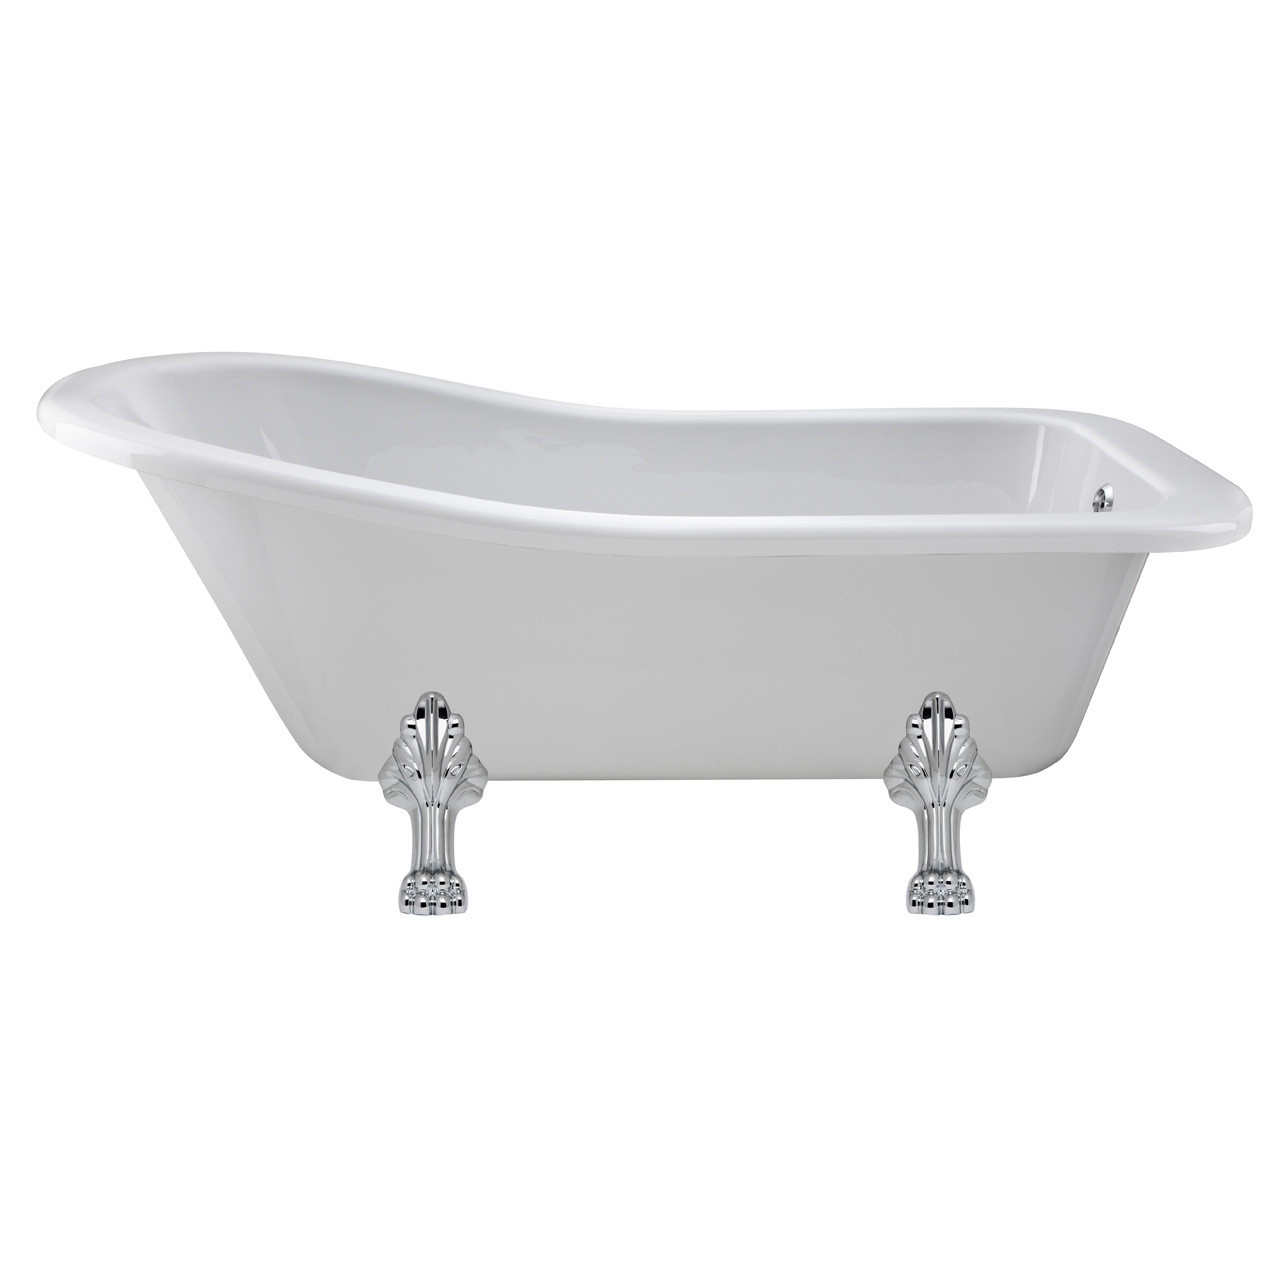 Premier White Kensington 1700 Single Ended Freestanding Bath with Pride Legs - RL1690C2